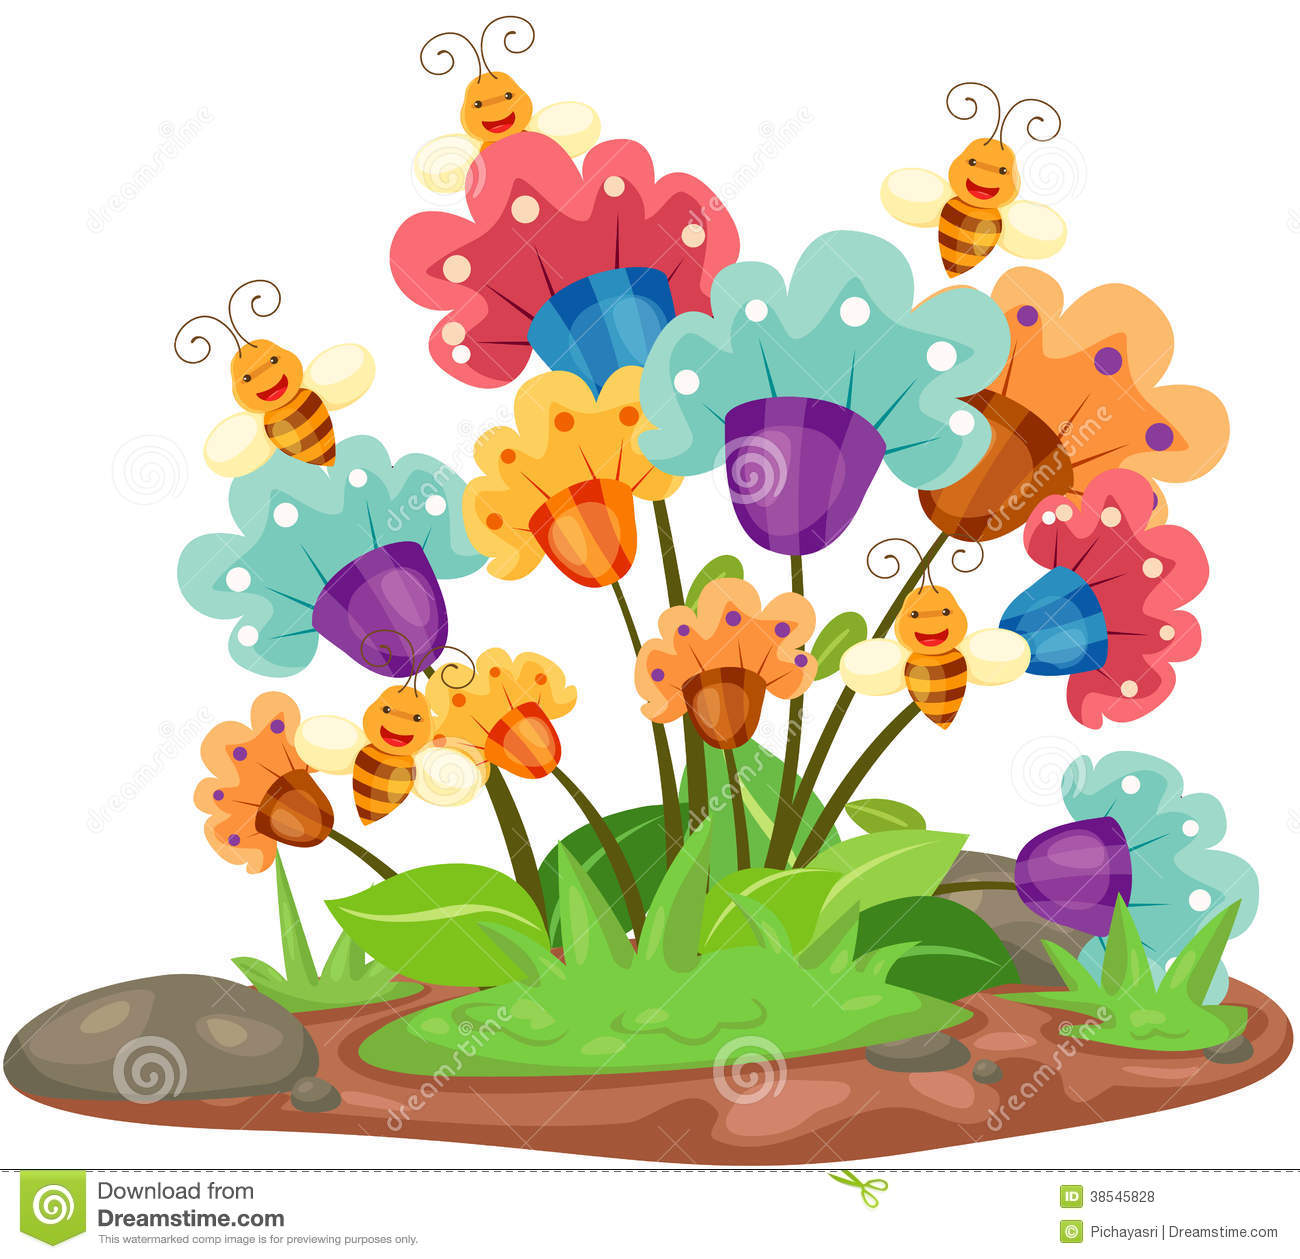 Flowers with bees